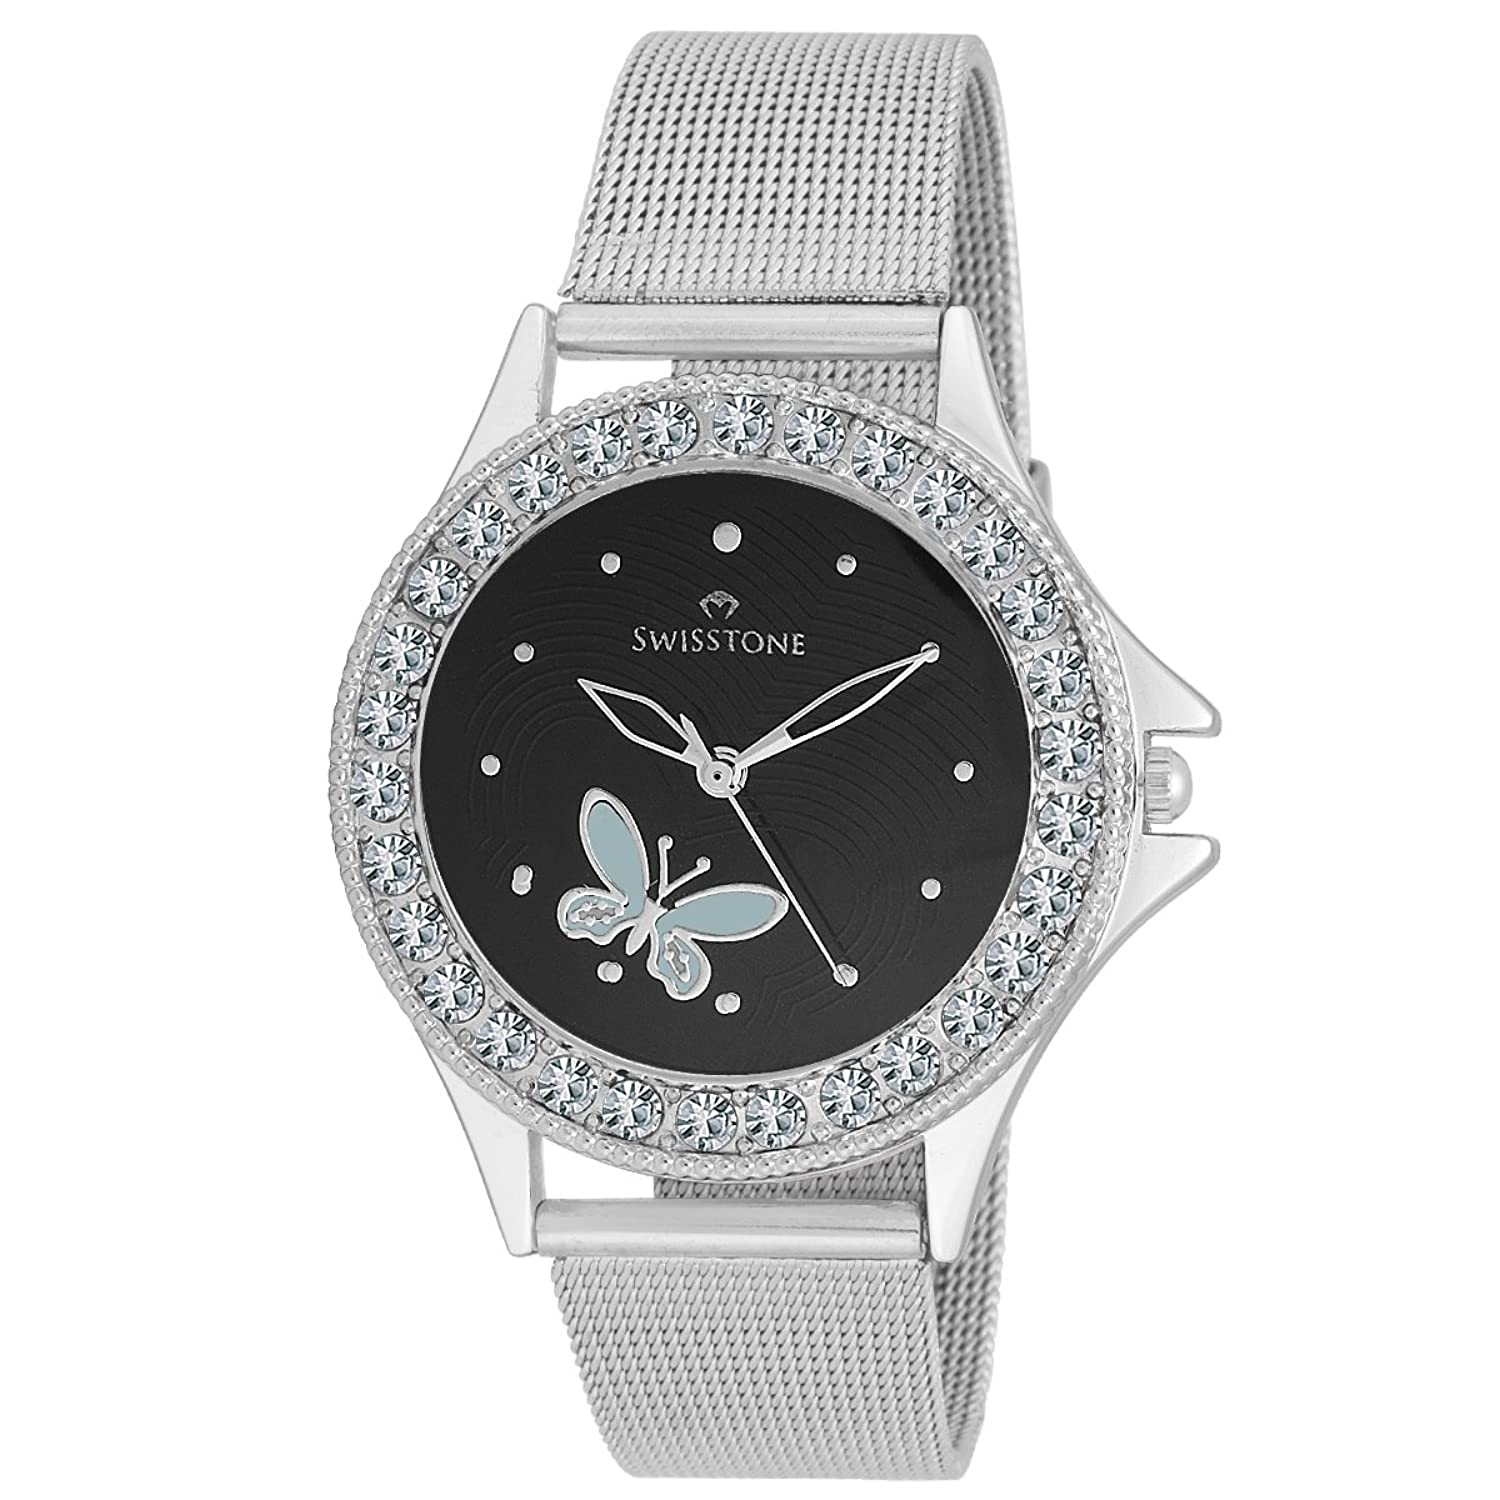 Swisstone Analogue Black Dial Girl's and Women's Watch - VOGLR501-BLK-CH